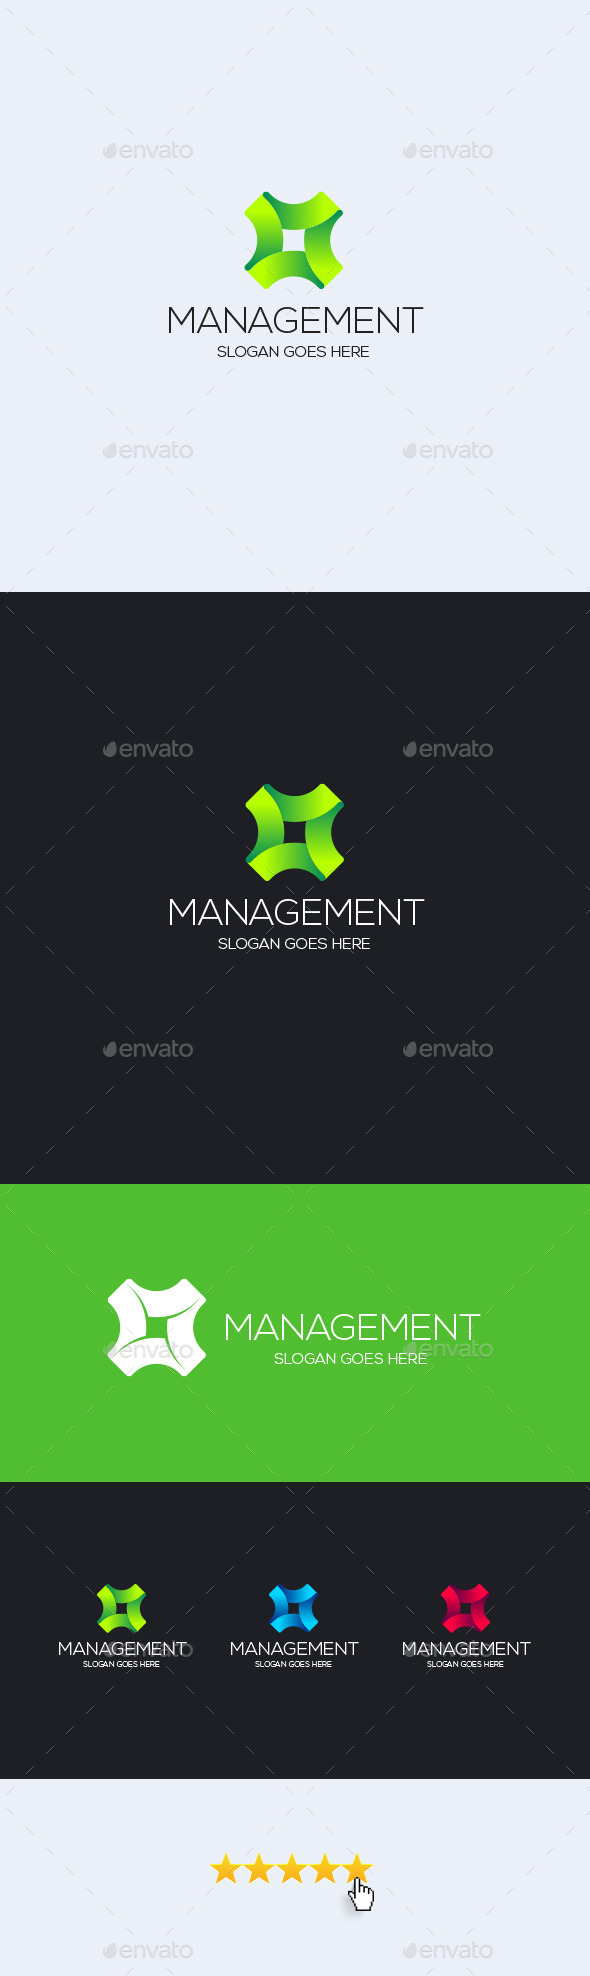 Management Logo Template - Vector Abstract